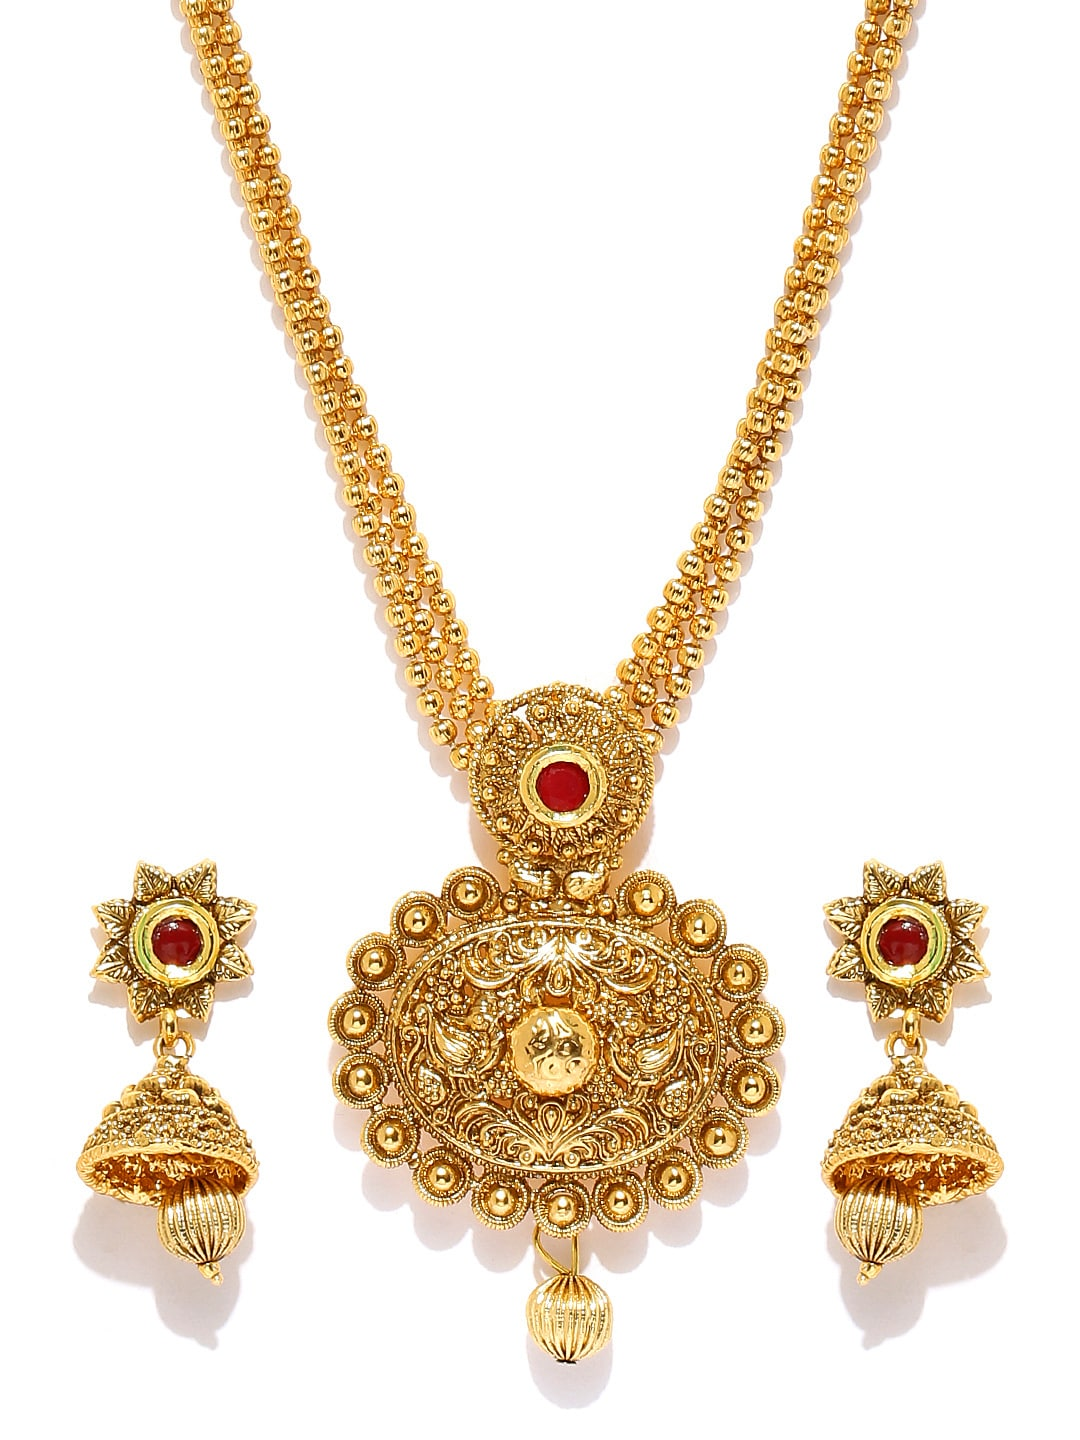 dd15e3a0178 Pearls Jewellery - Buy Pearls Jewellery online in India